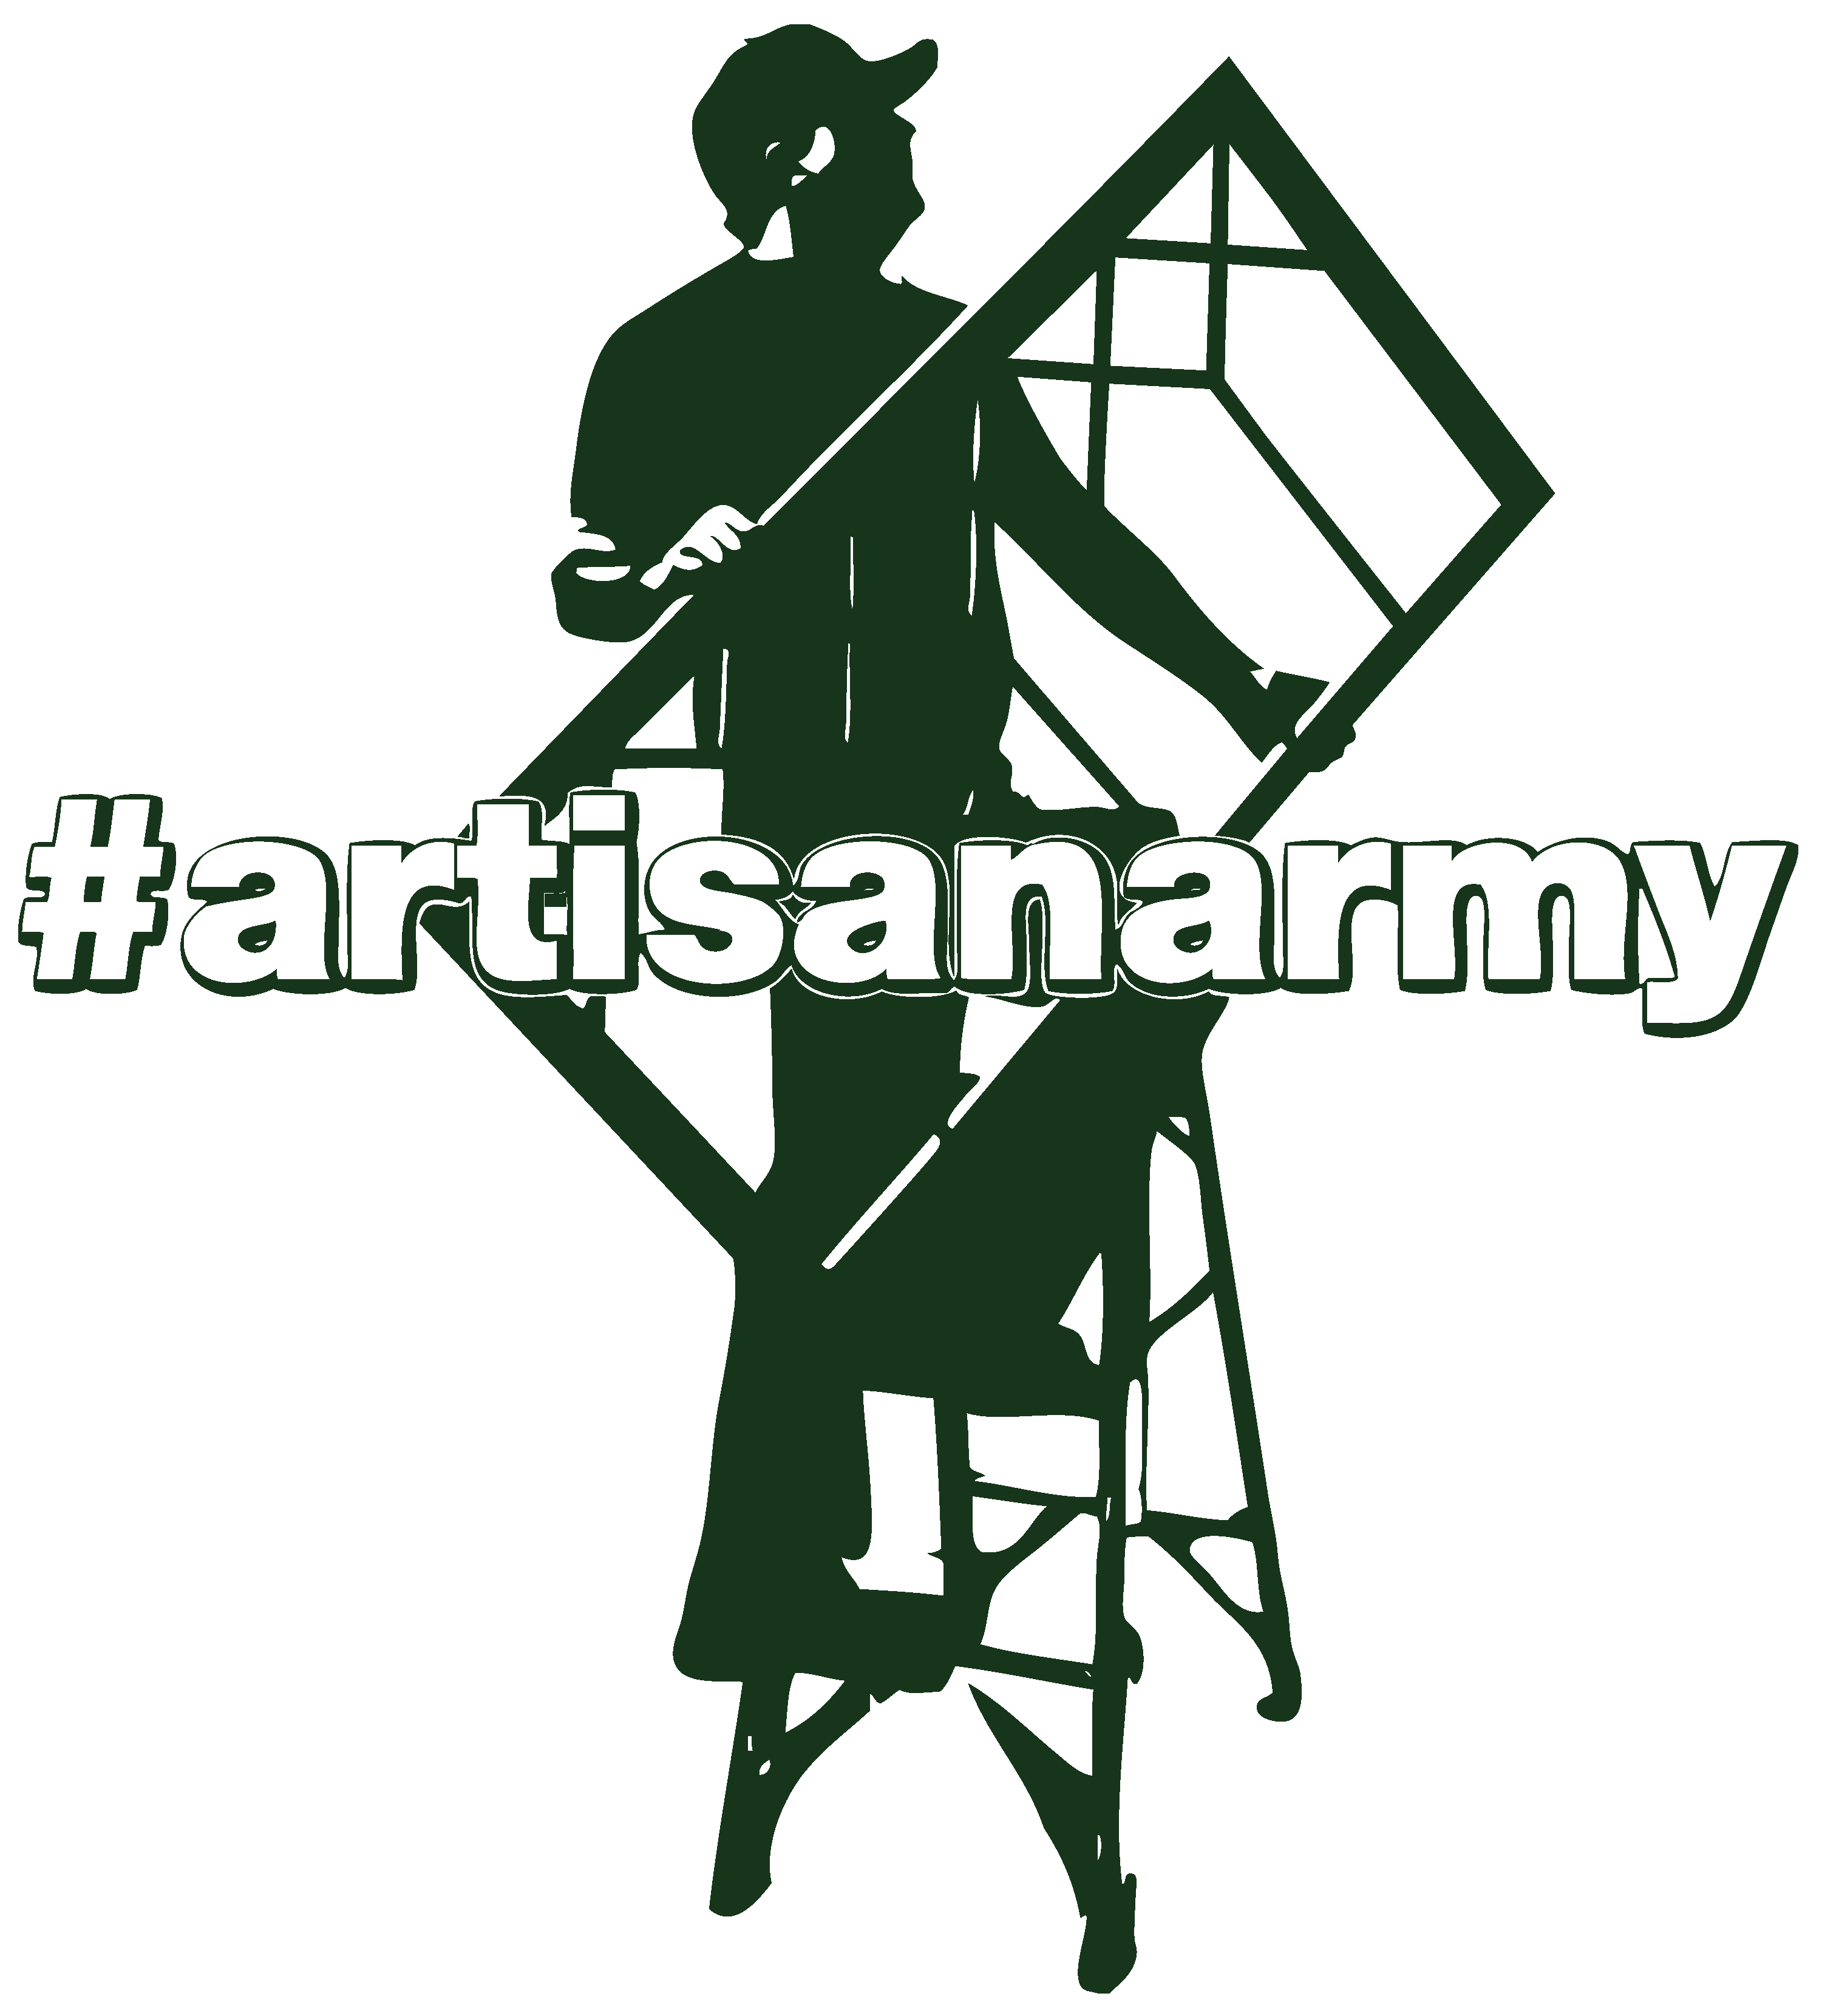 Artisanarmy presenters sponsors . Ladder clipart our town